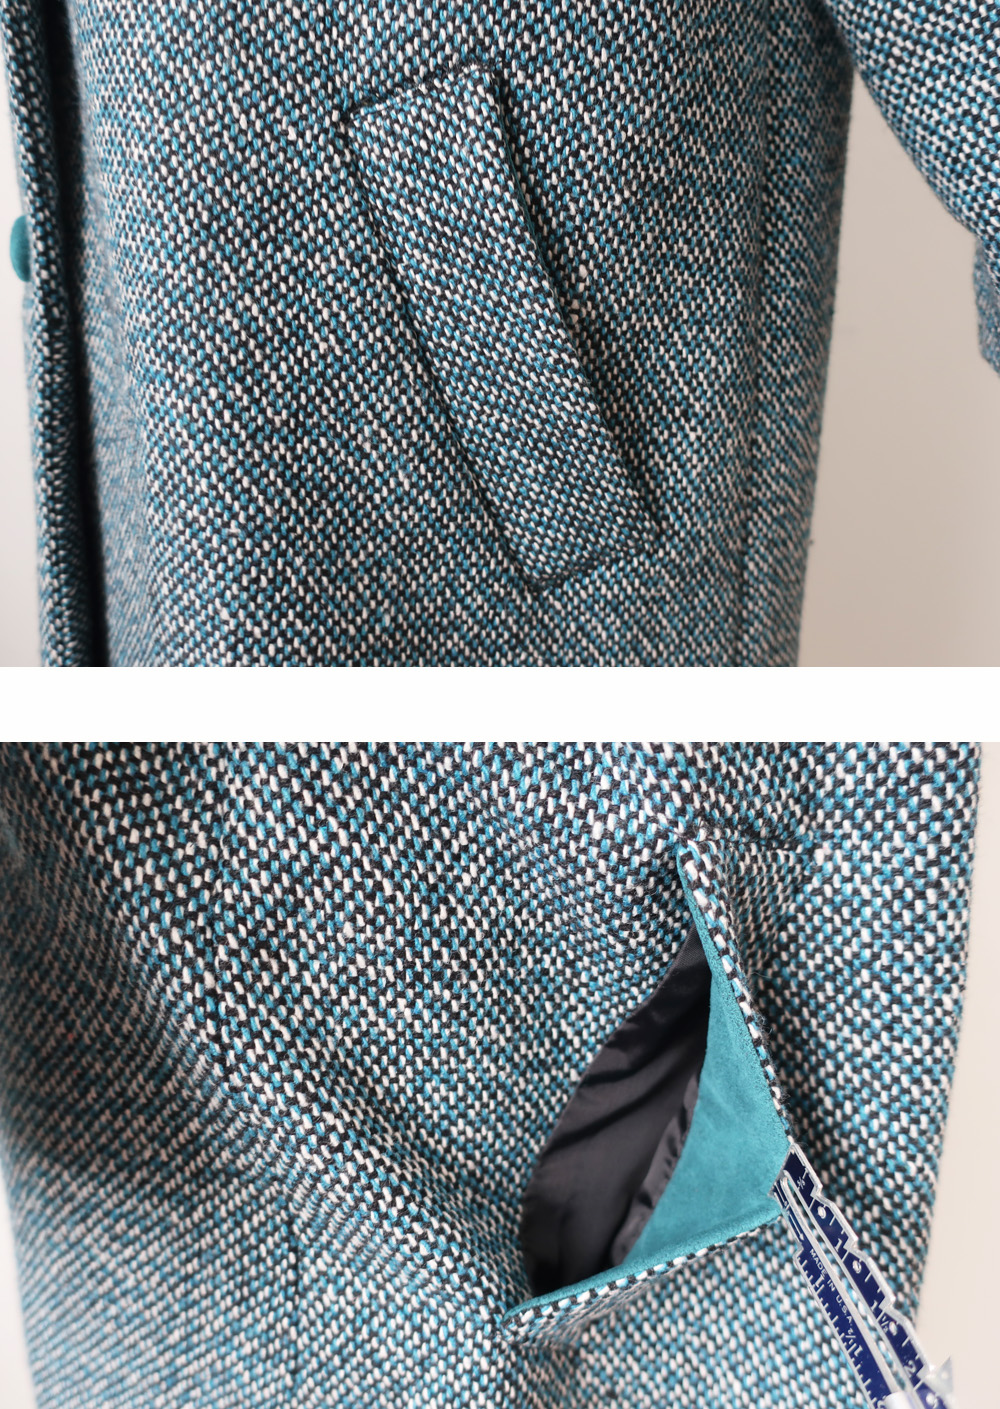 Teal pockets